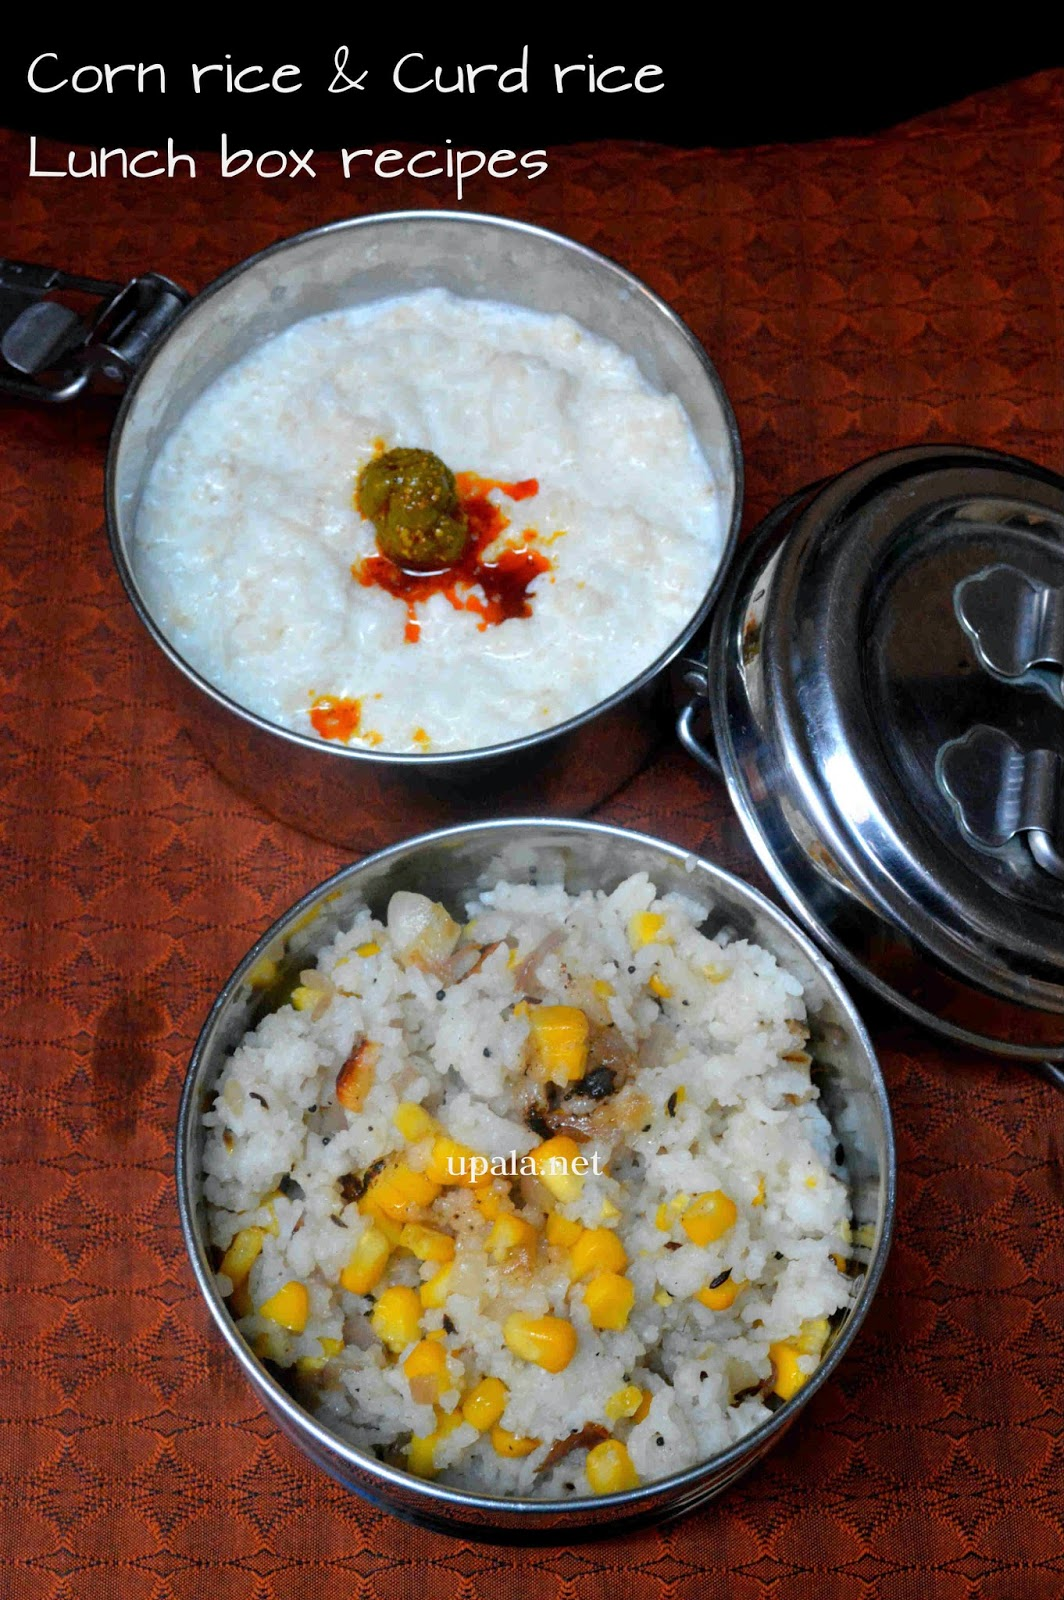 corn rice curd rice lunch box